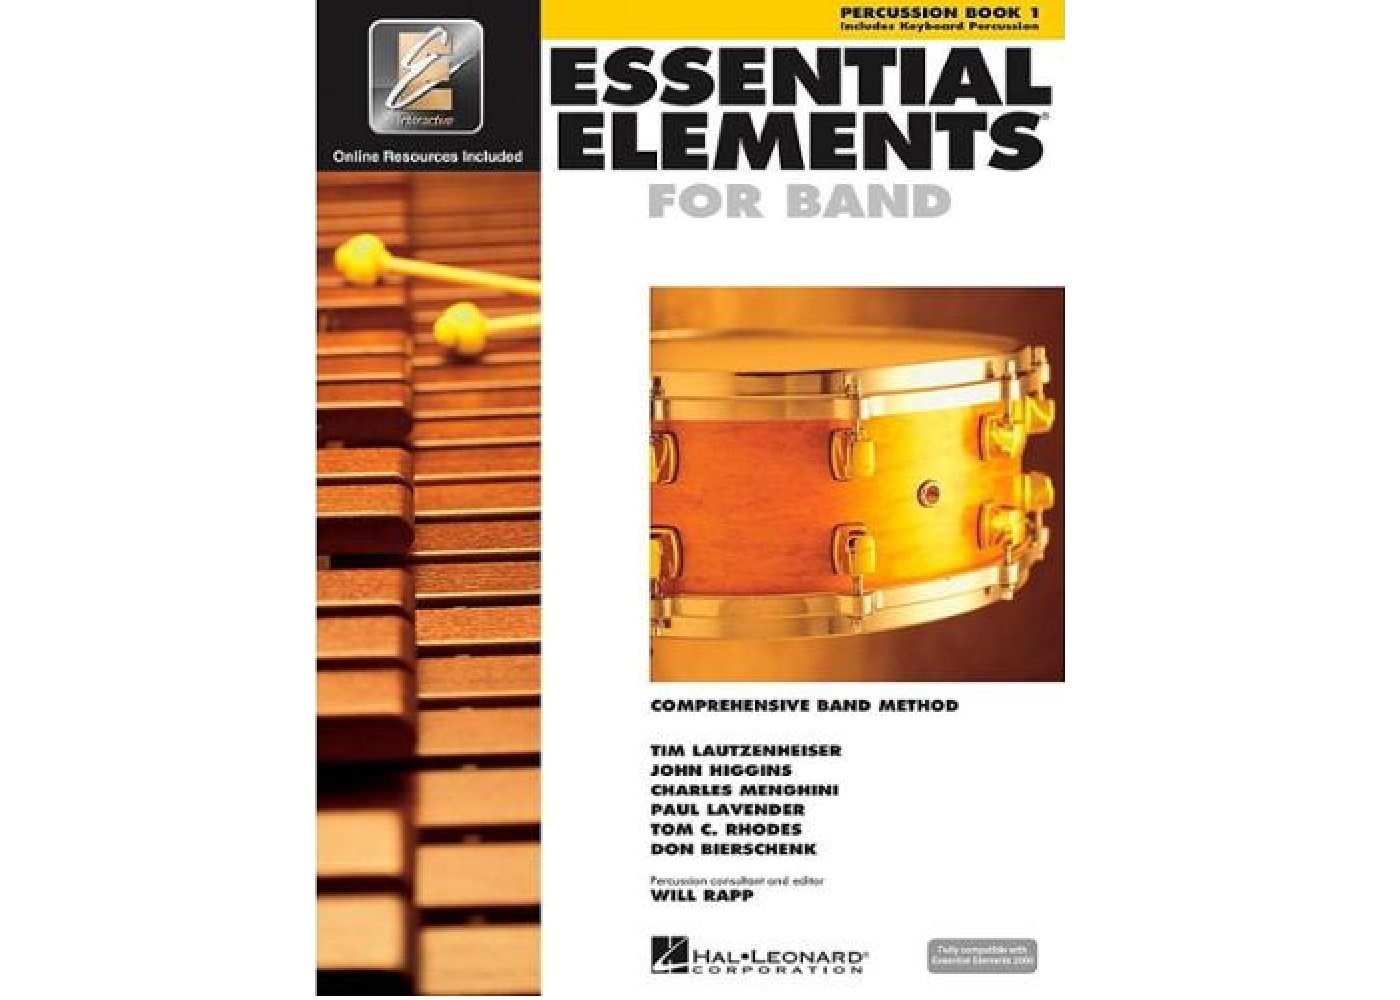 Essential Elements For Band - Percussion Book 1 (Book/CD-ROM)